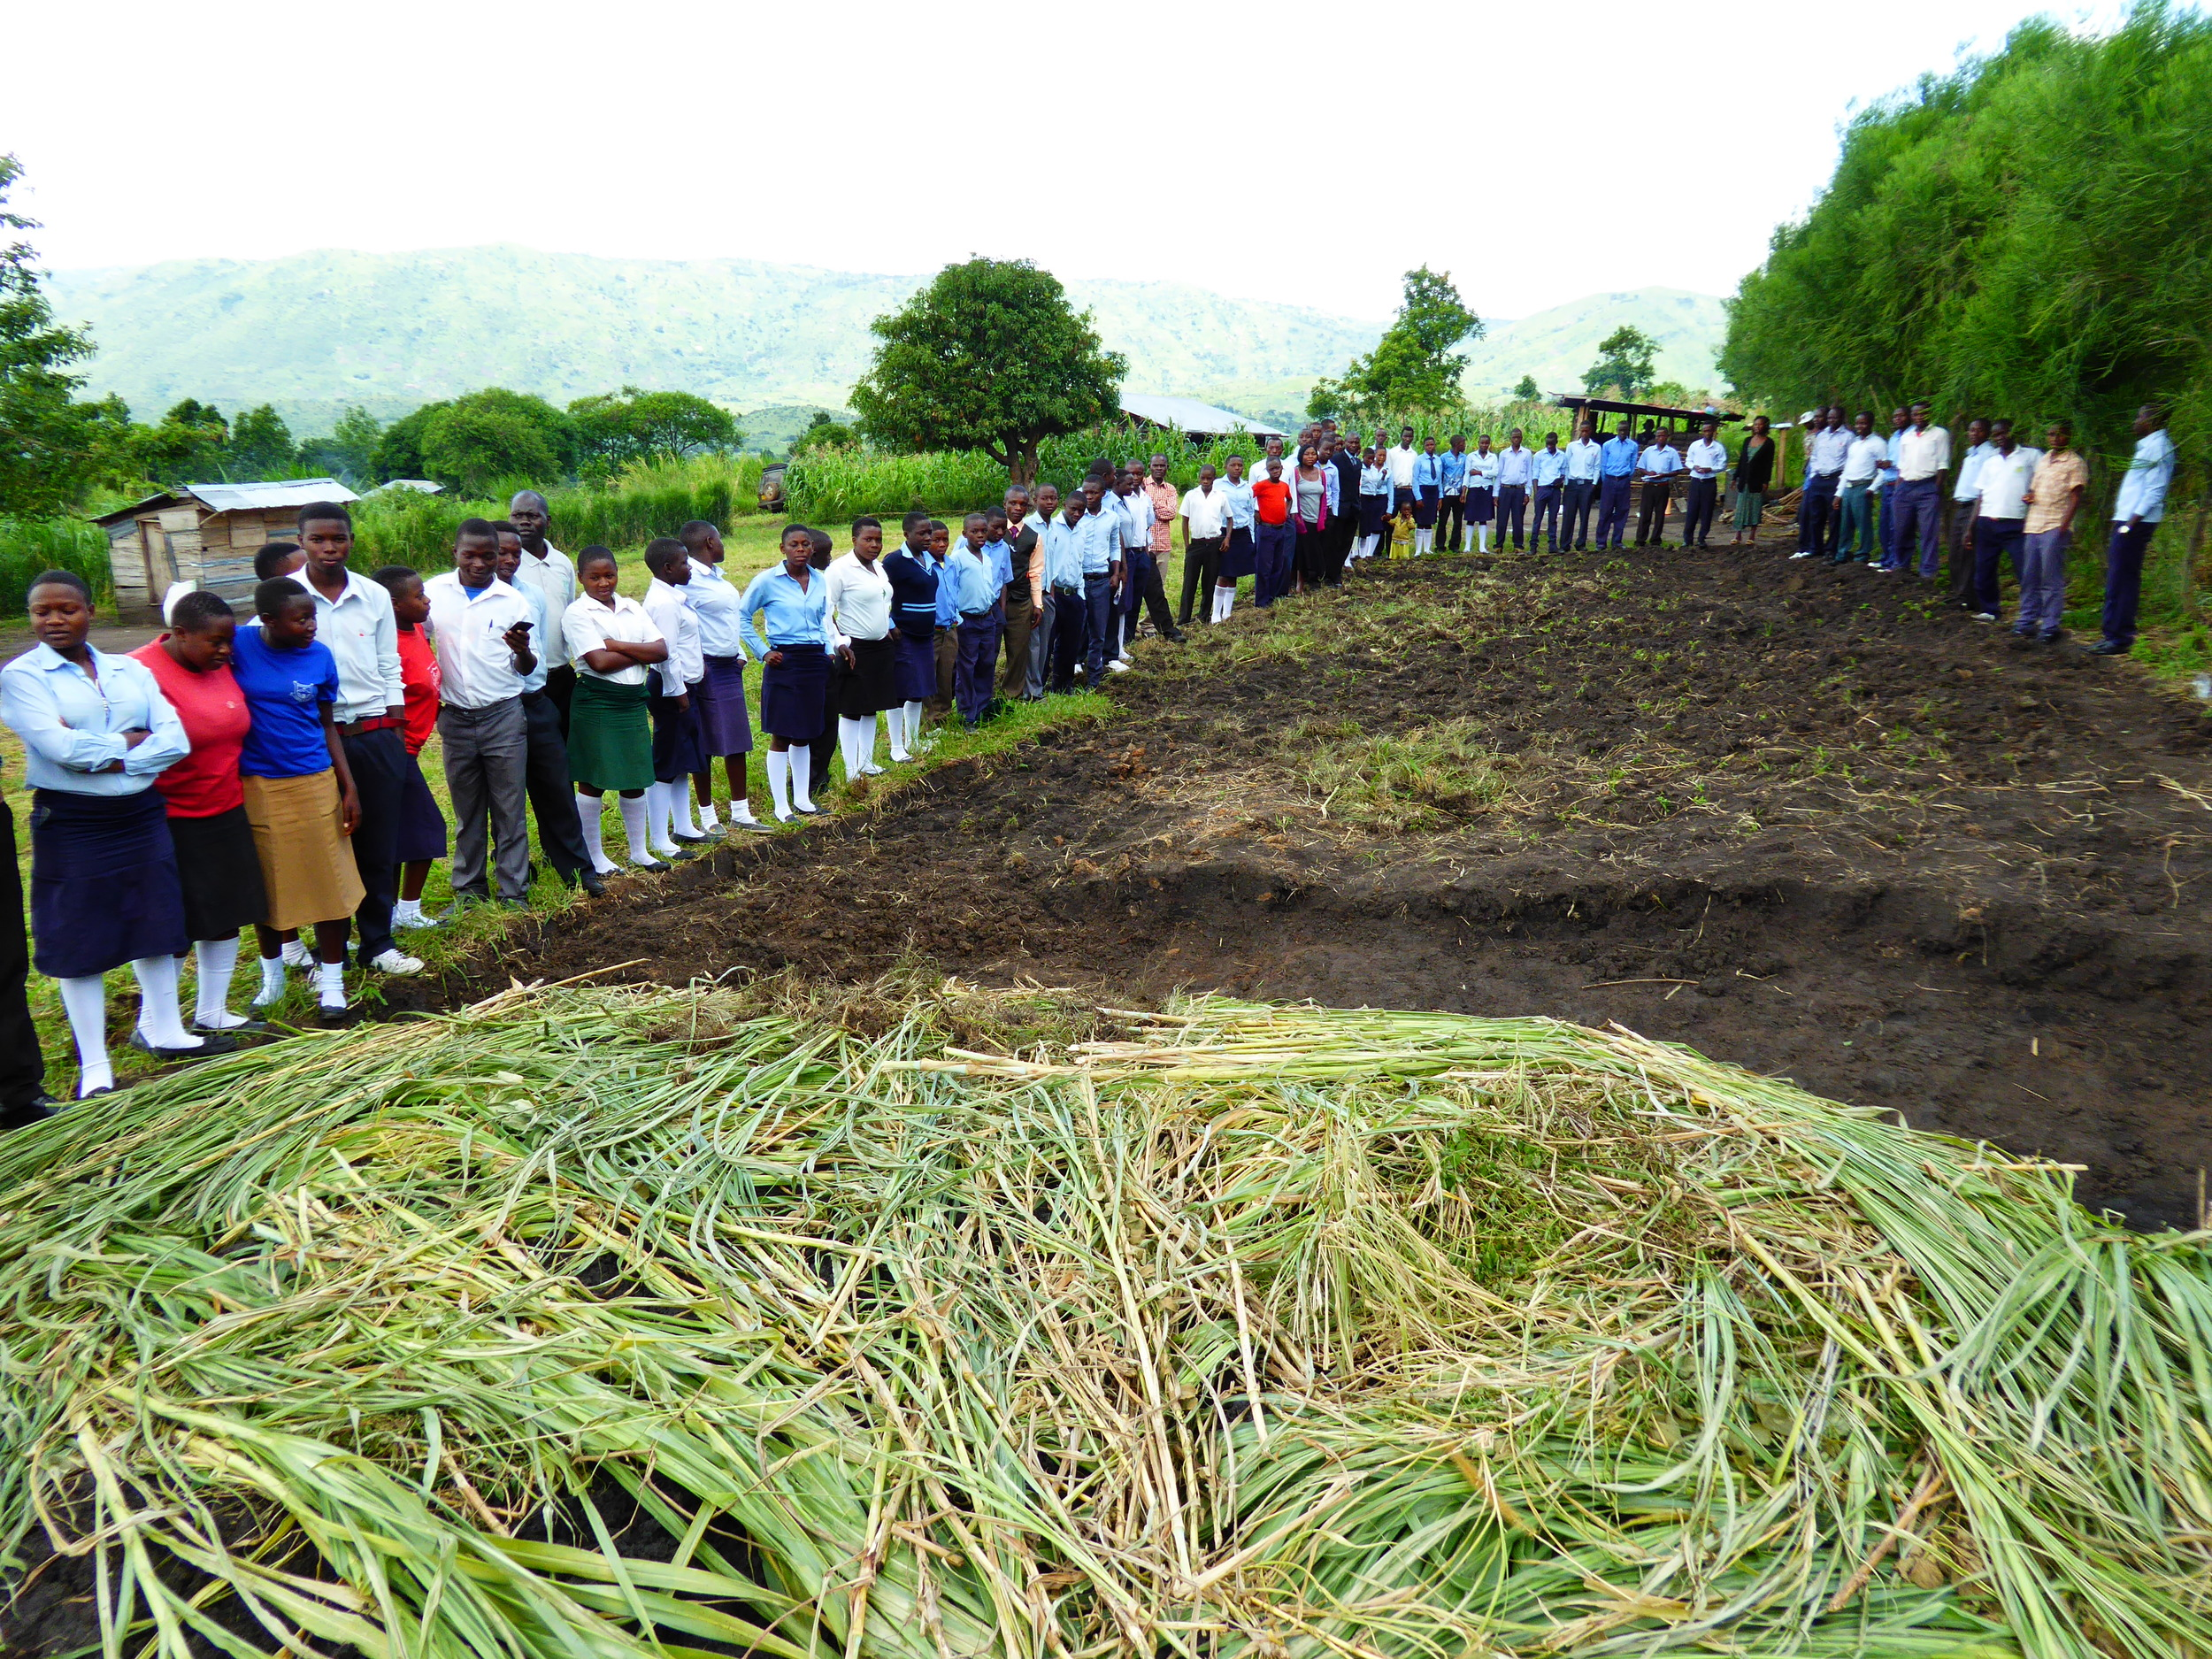 Students standing around land where permanent classrooms will be built